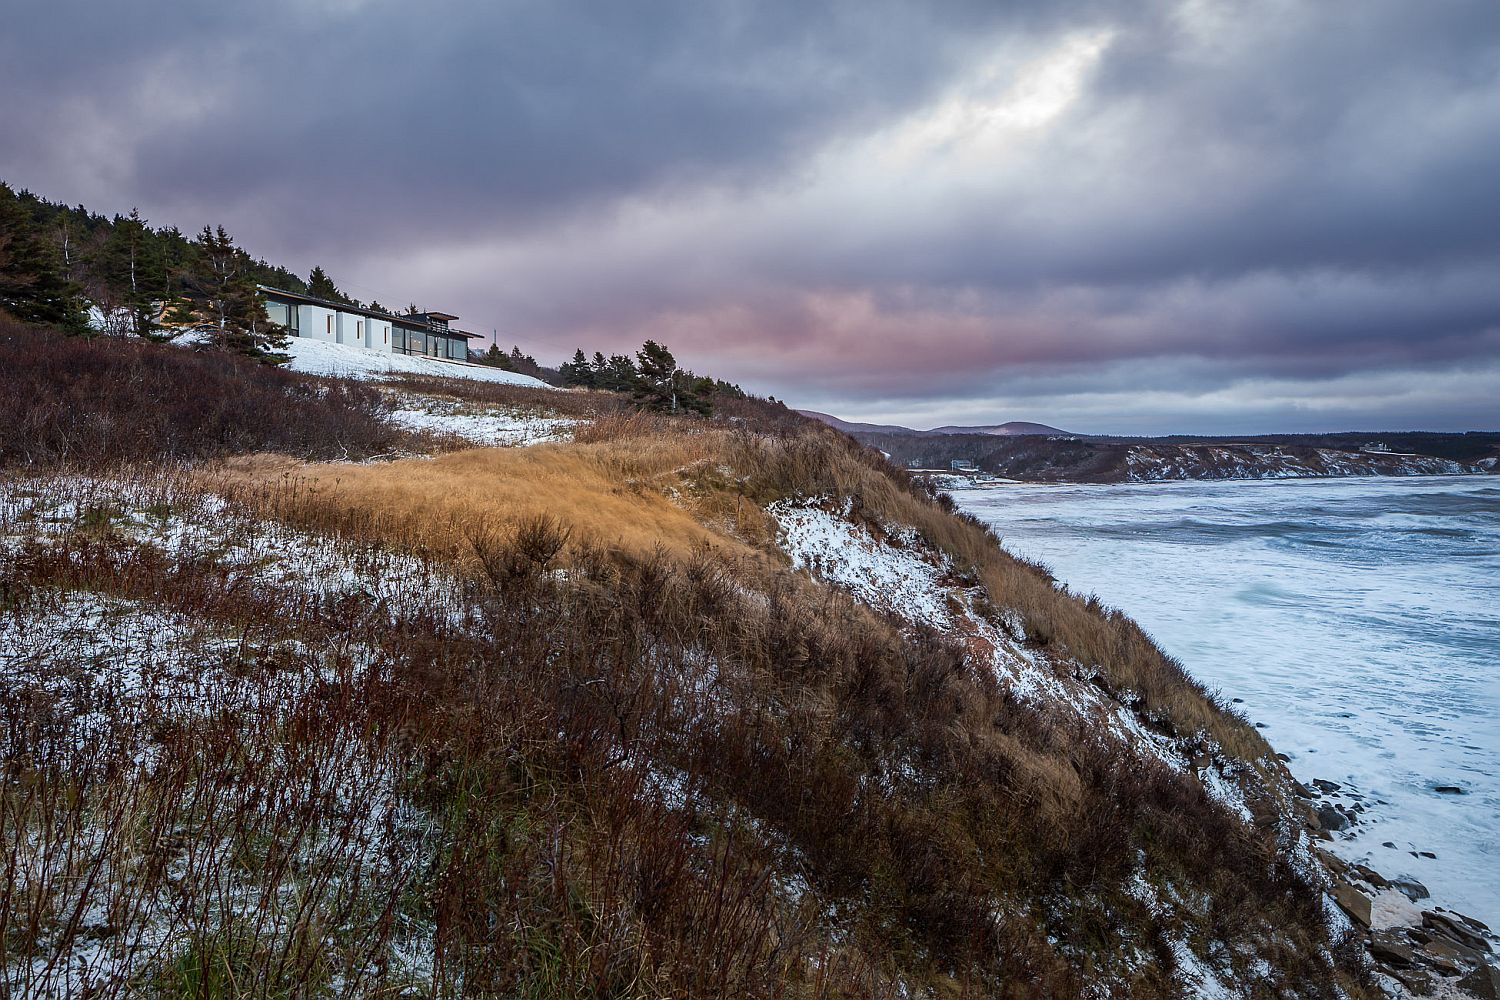 Rough coastline and Gulf of St. Lawrence offer stunning views at the Lookout